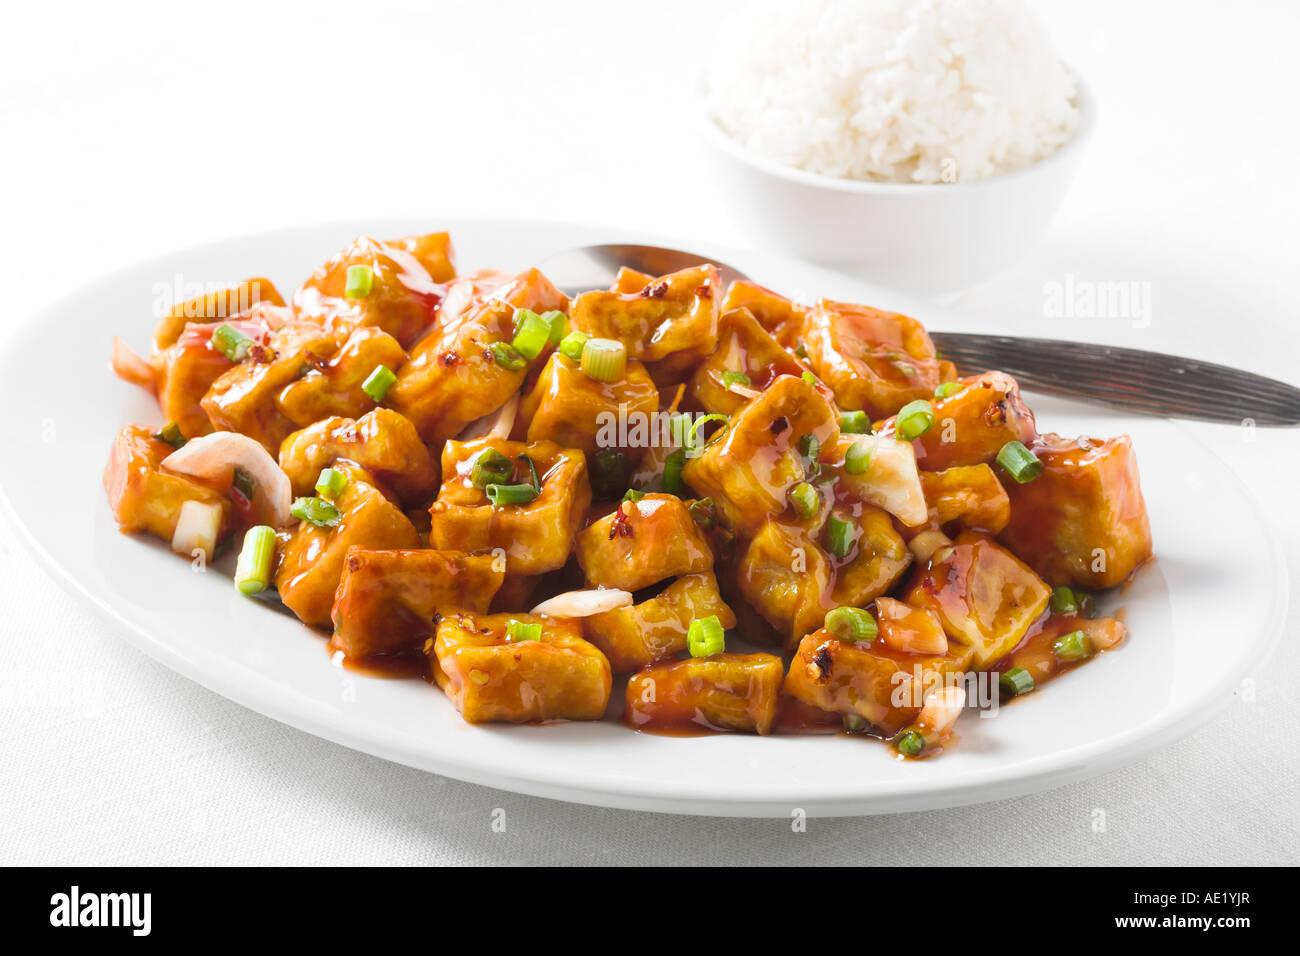 Sezhuan Sze Chuan Crispy Tofu oyster sauce chinese food with green onion dish white plate delicious mouth watering - Stock Image